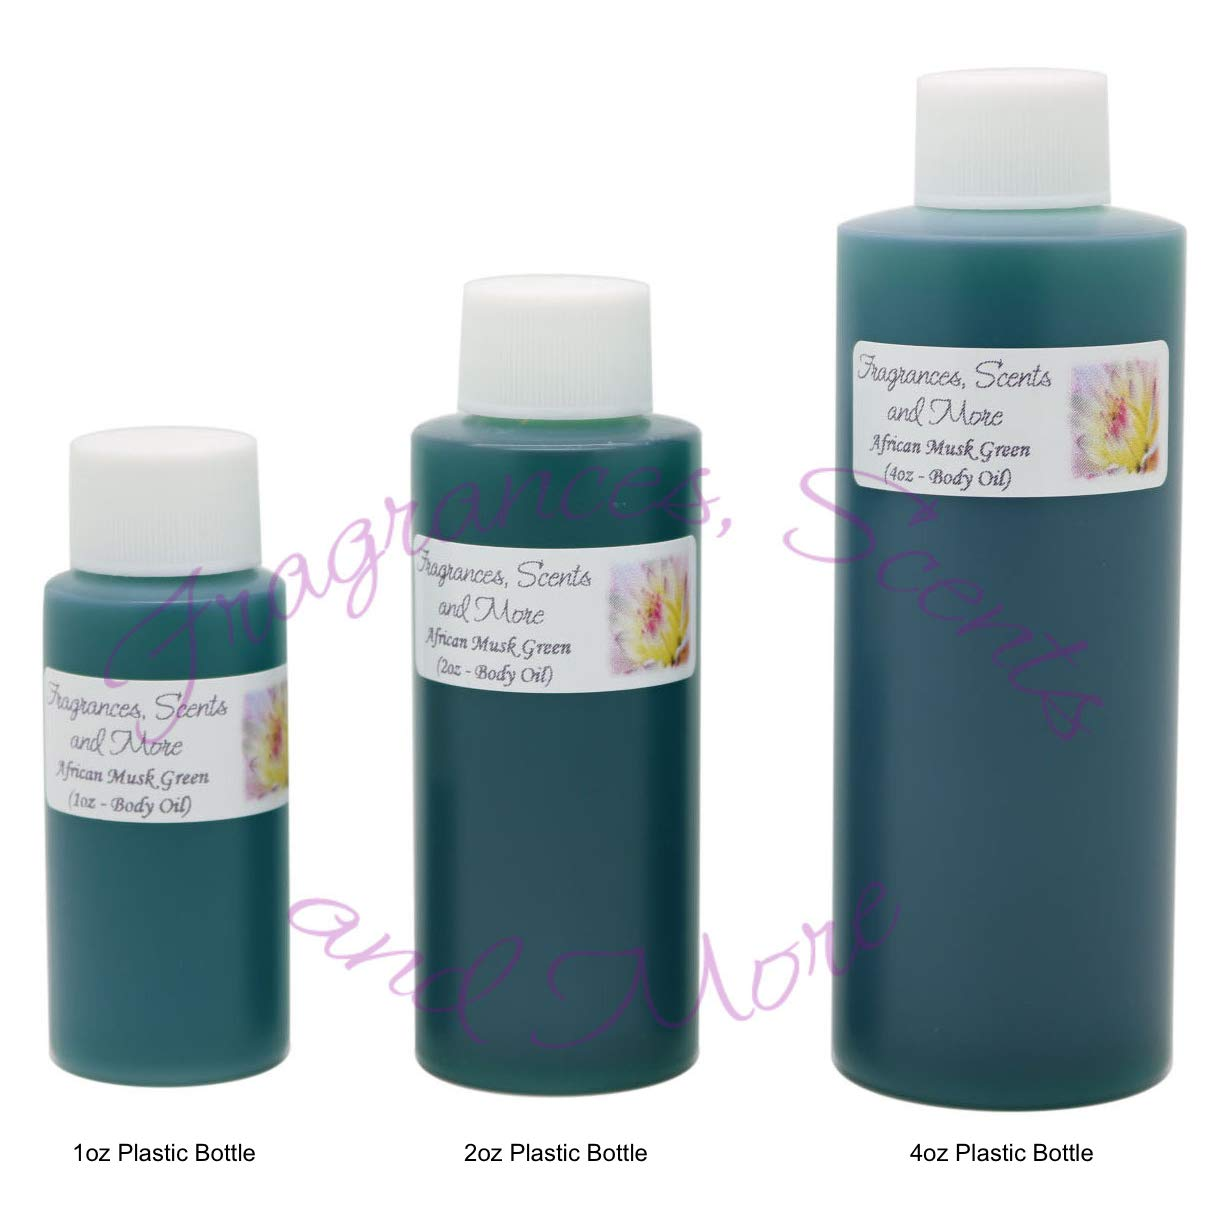 African Musk Green Perfume/Body Oil (7 Sizes) - Free Shipping (1 Bottle 1/6oz Roll On (5ml))